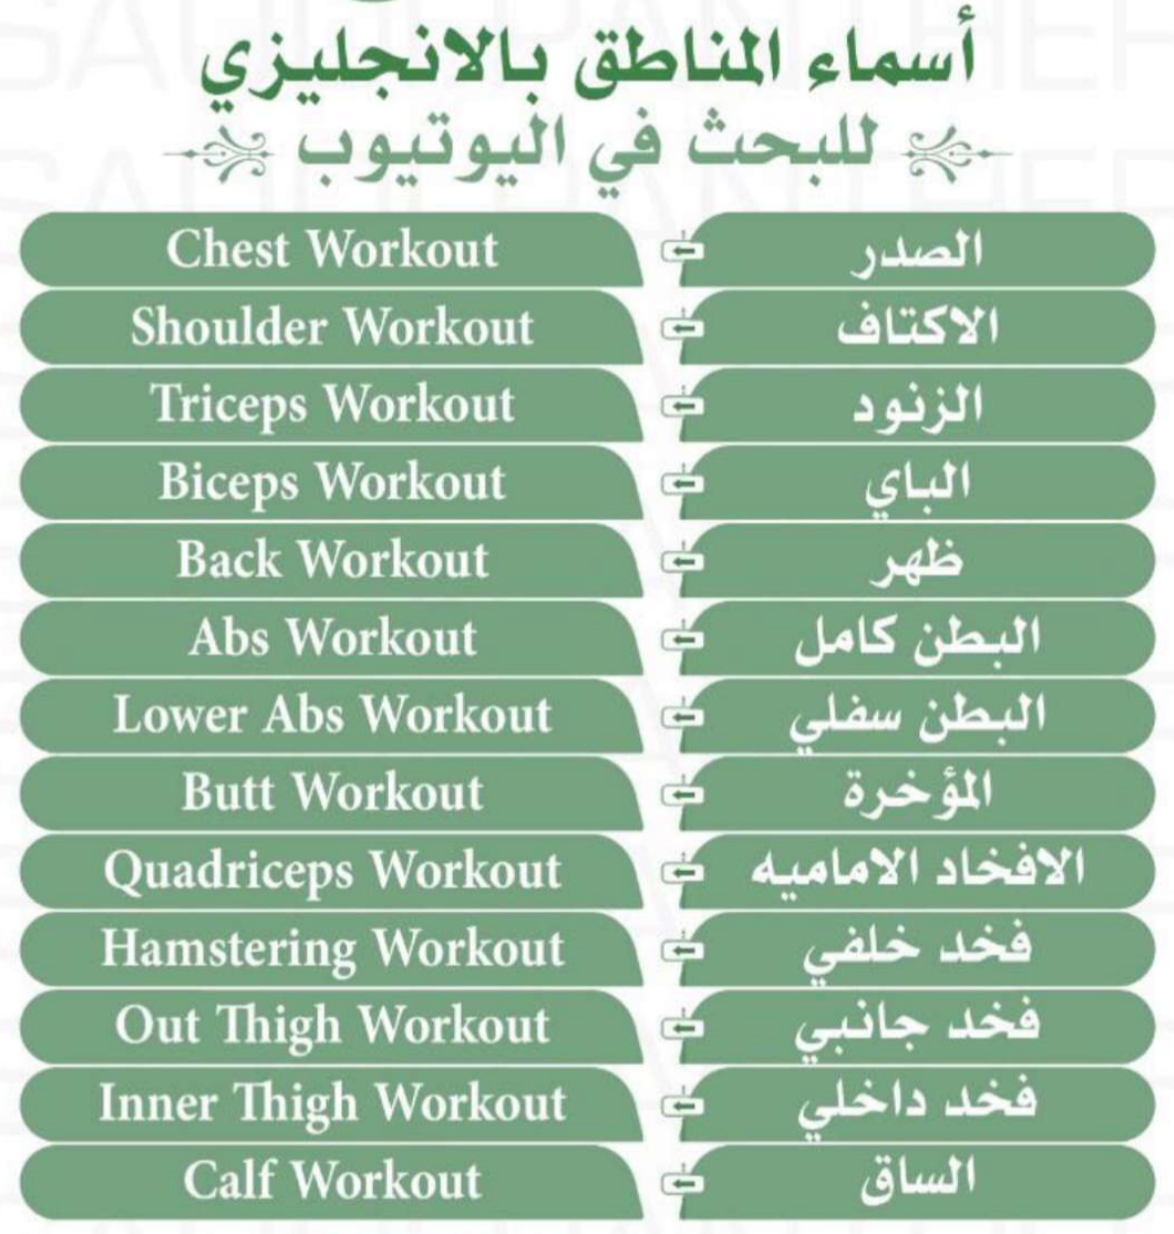 Pin By منوعات مفيدة On English Inner Thigh Workout Lower Abs Workout Shoulder Workout